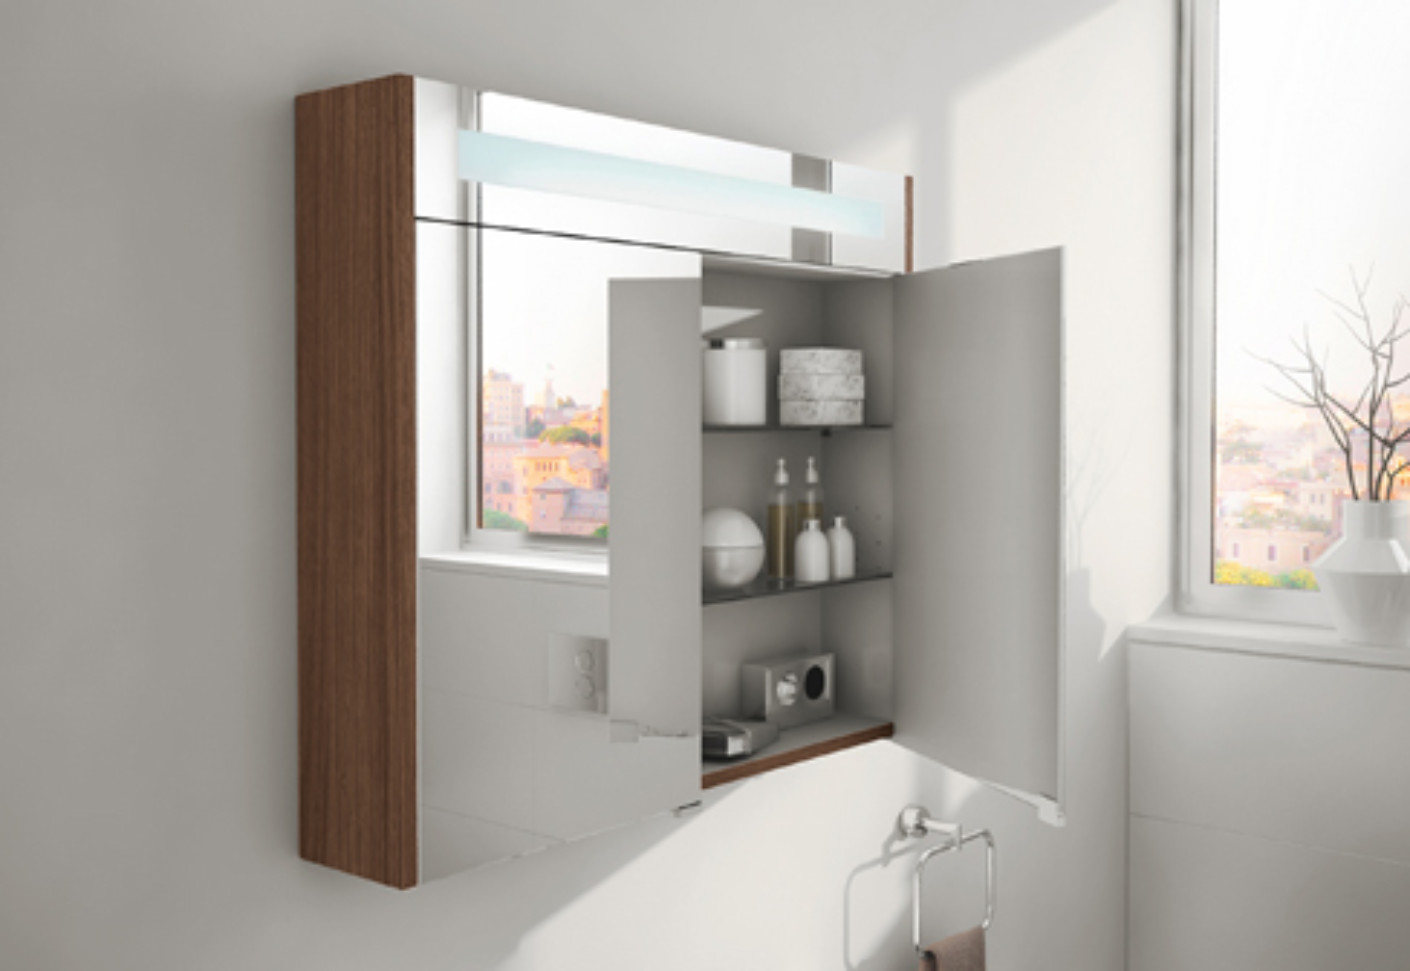 Bathroom Cabinet With Mirror S20 Mirror Cabinet By Vitra Bathroom Stylepark